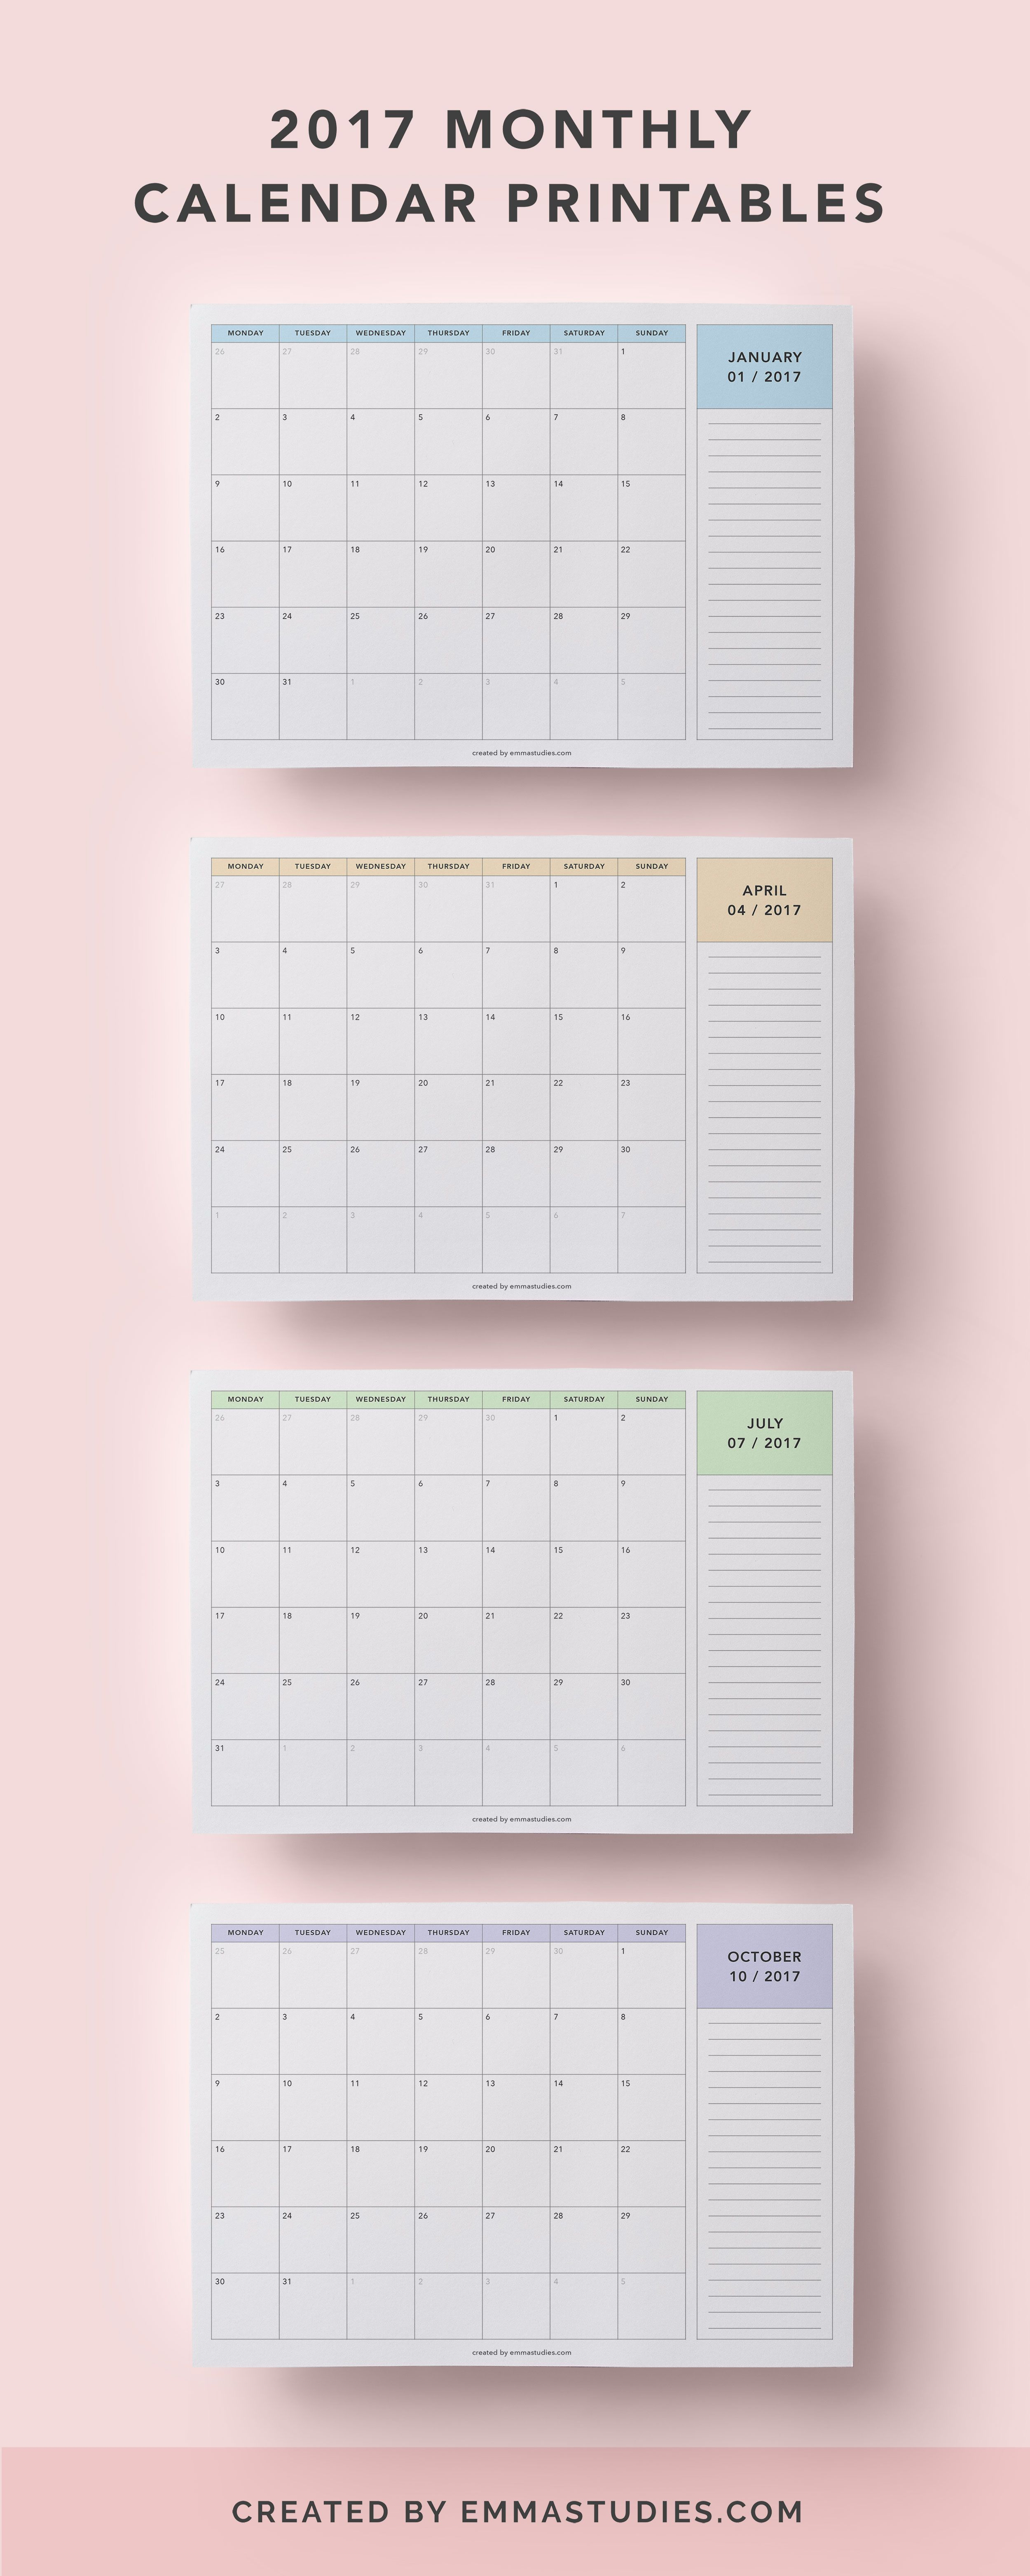 2017 monthly calendar printables free to download by emmastudies in pastel colours peach blue